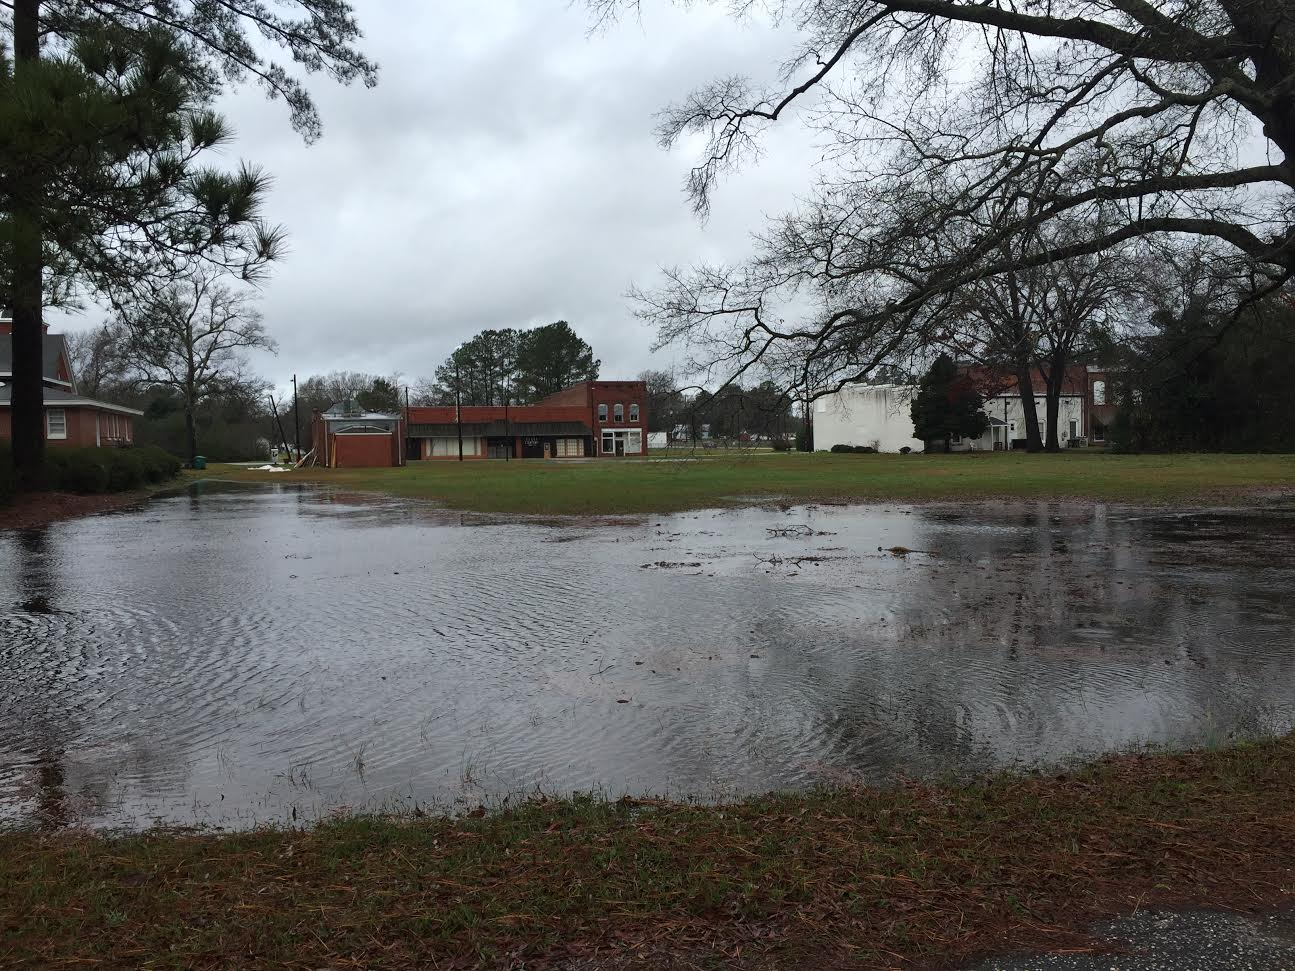 Heavy rain across the area leads to high water